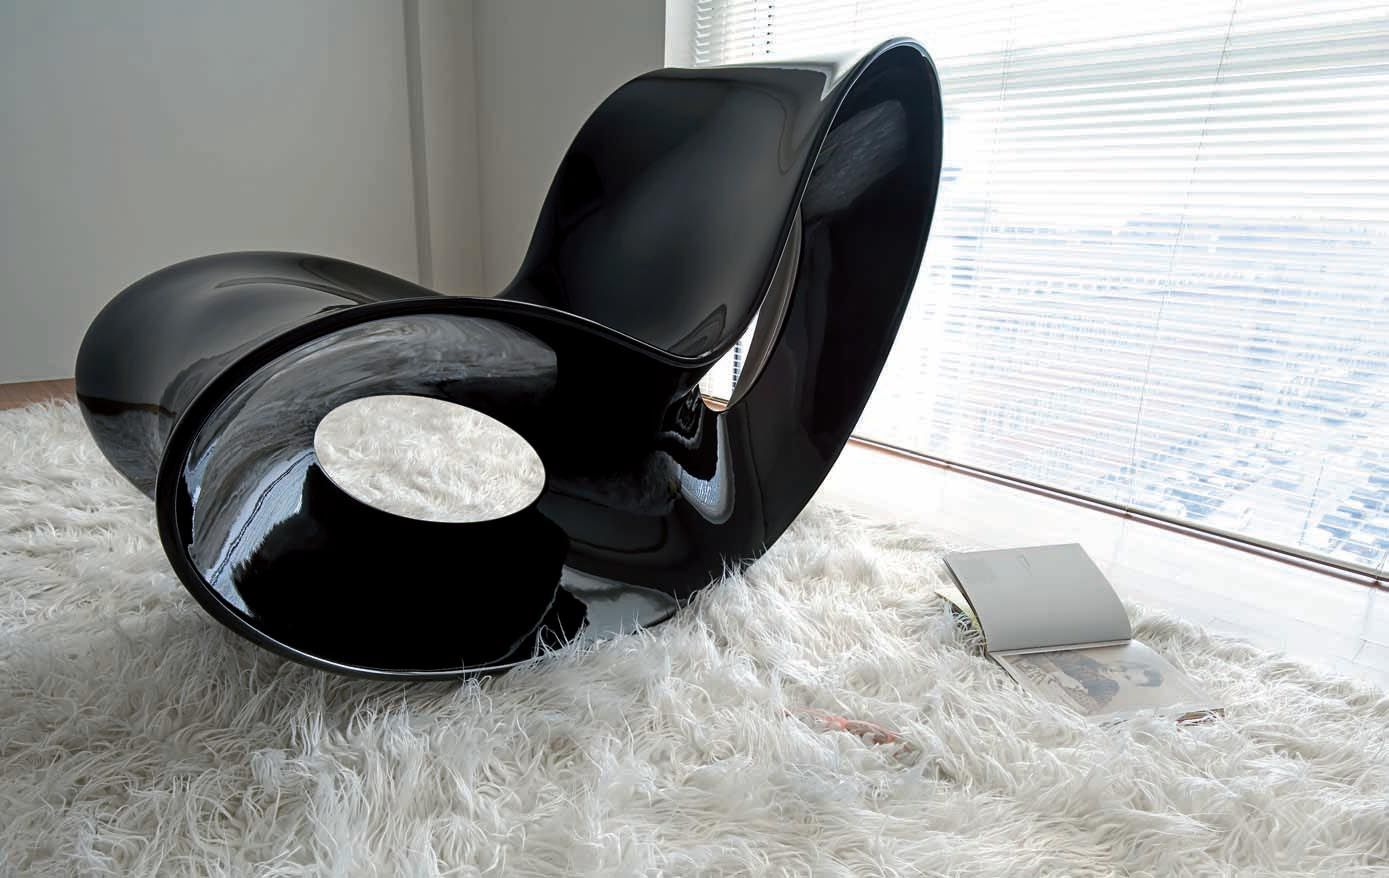 Voido rocking chair lacquered version lacqued black by magis for Magis voido